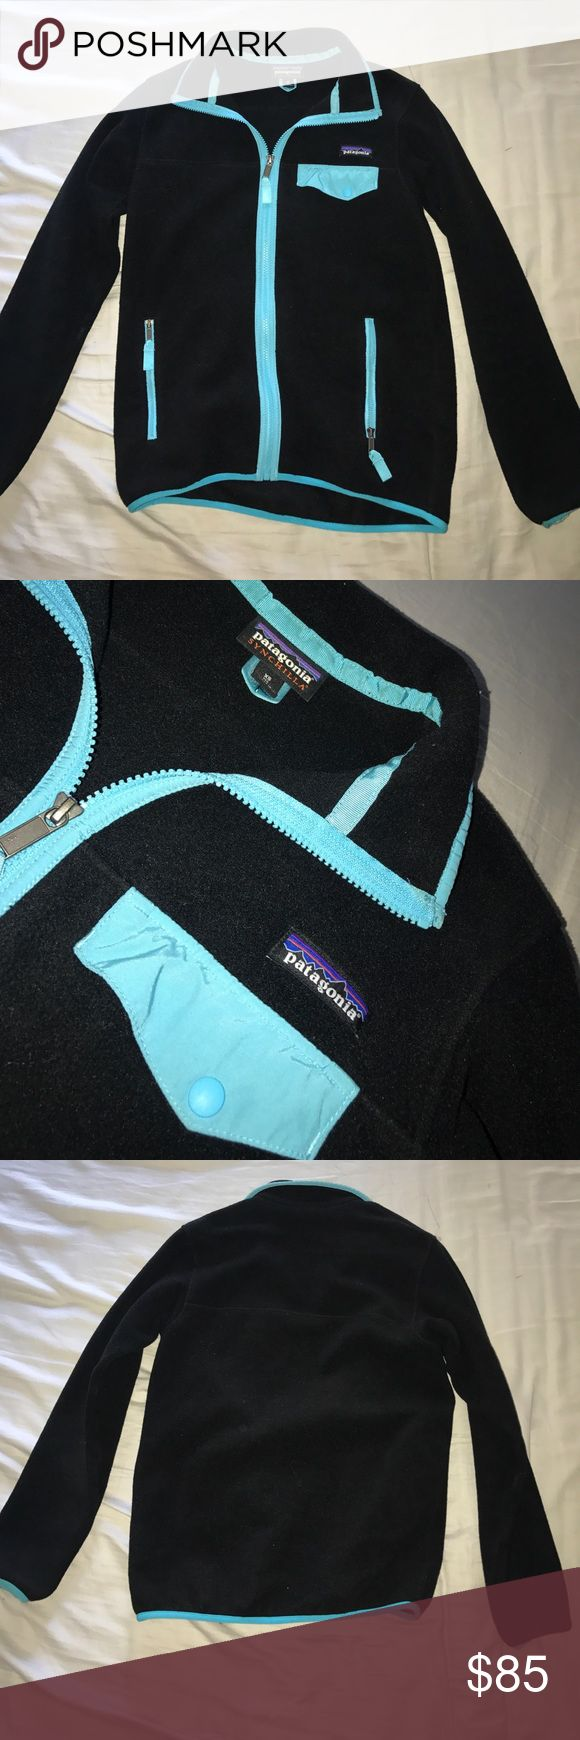 Black and Blue Patagonia Synchilla Jacket This is a very comfortable jacket to keep you warm in cold weather! This jacket is in extremely good condition. Patagonia Jackets & Coats